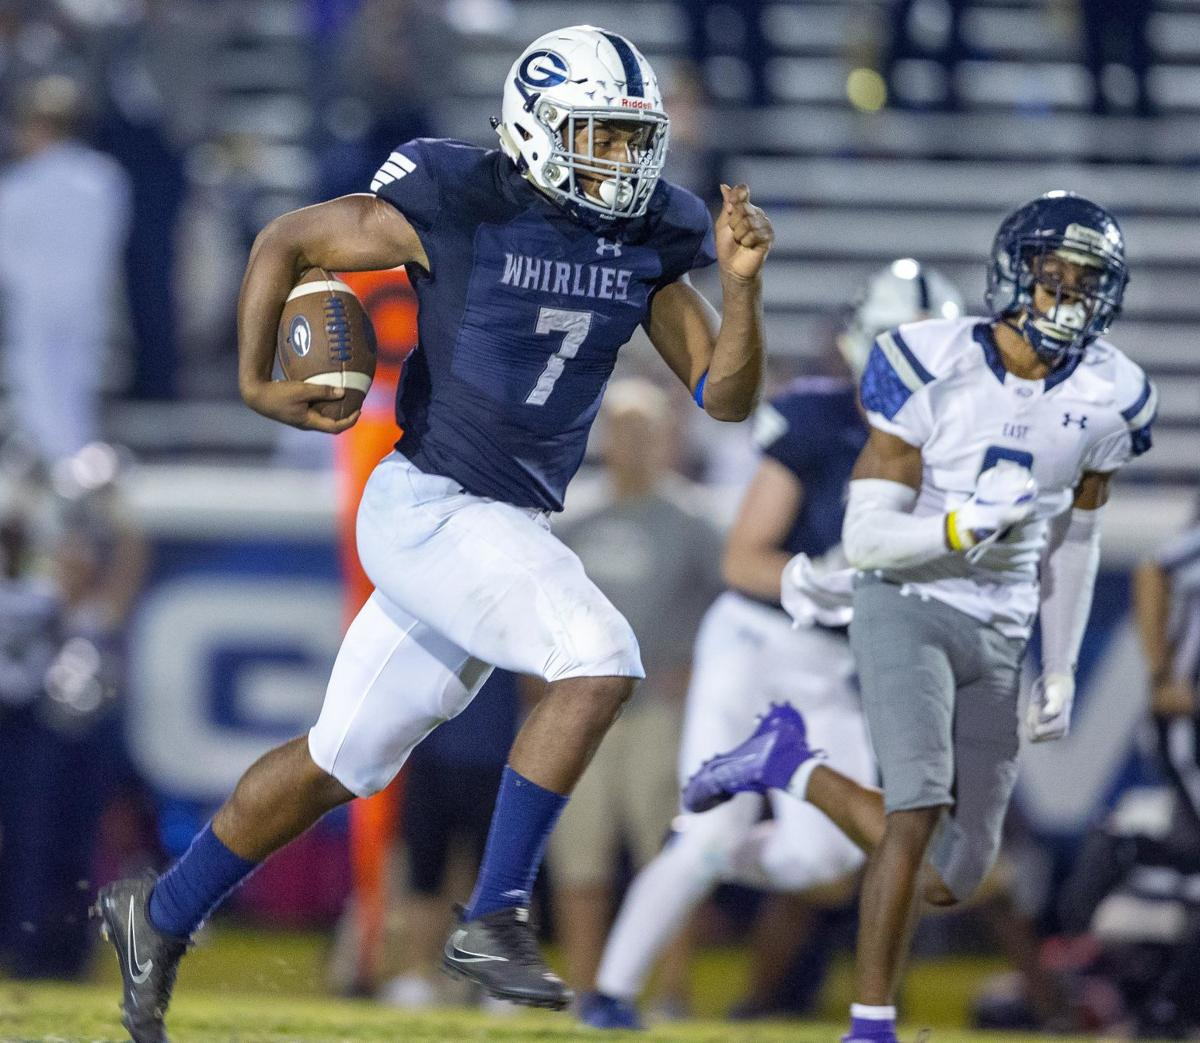 Grimsley vs East Forysth in battle of unbeatens (copy)